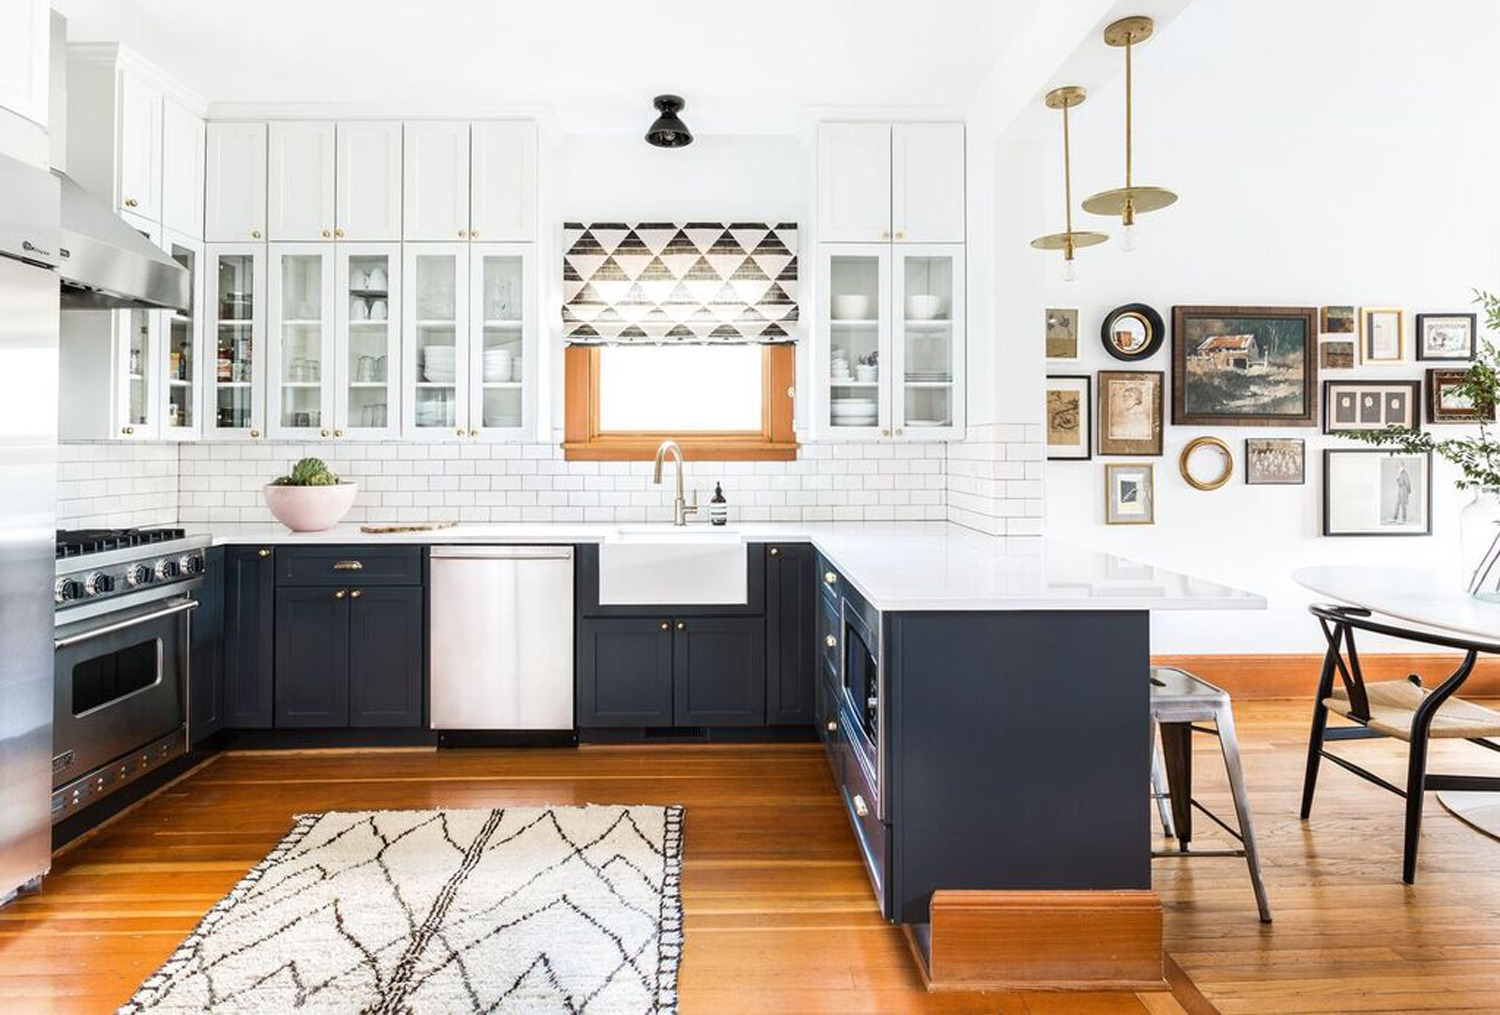 beautiful modern and light kitchen with white countertops and dark navy blue cabinets with wood flooring